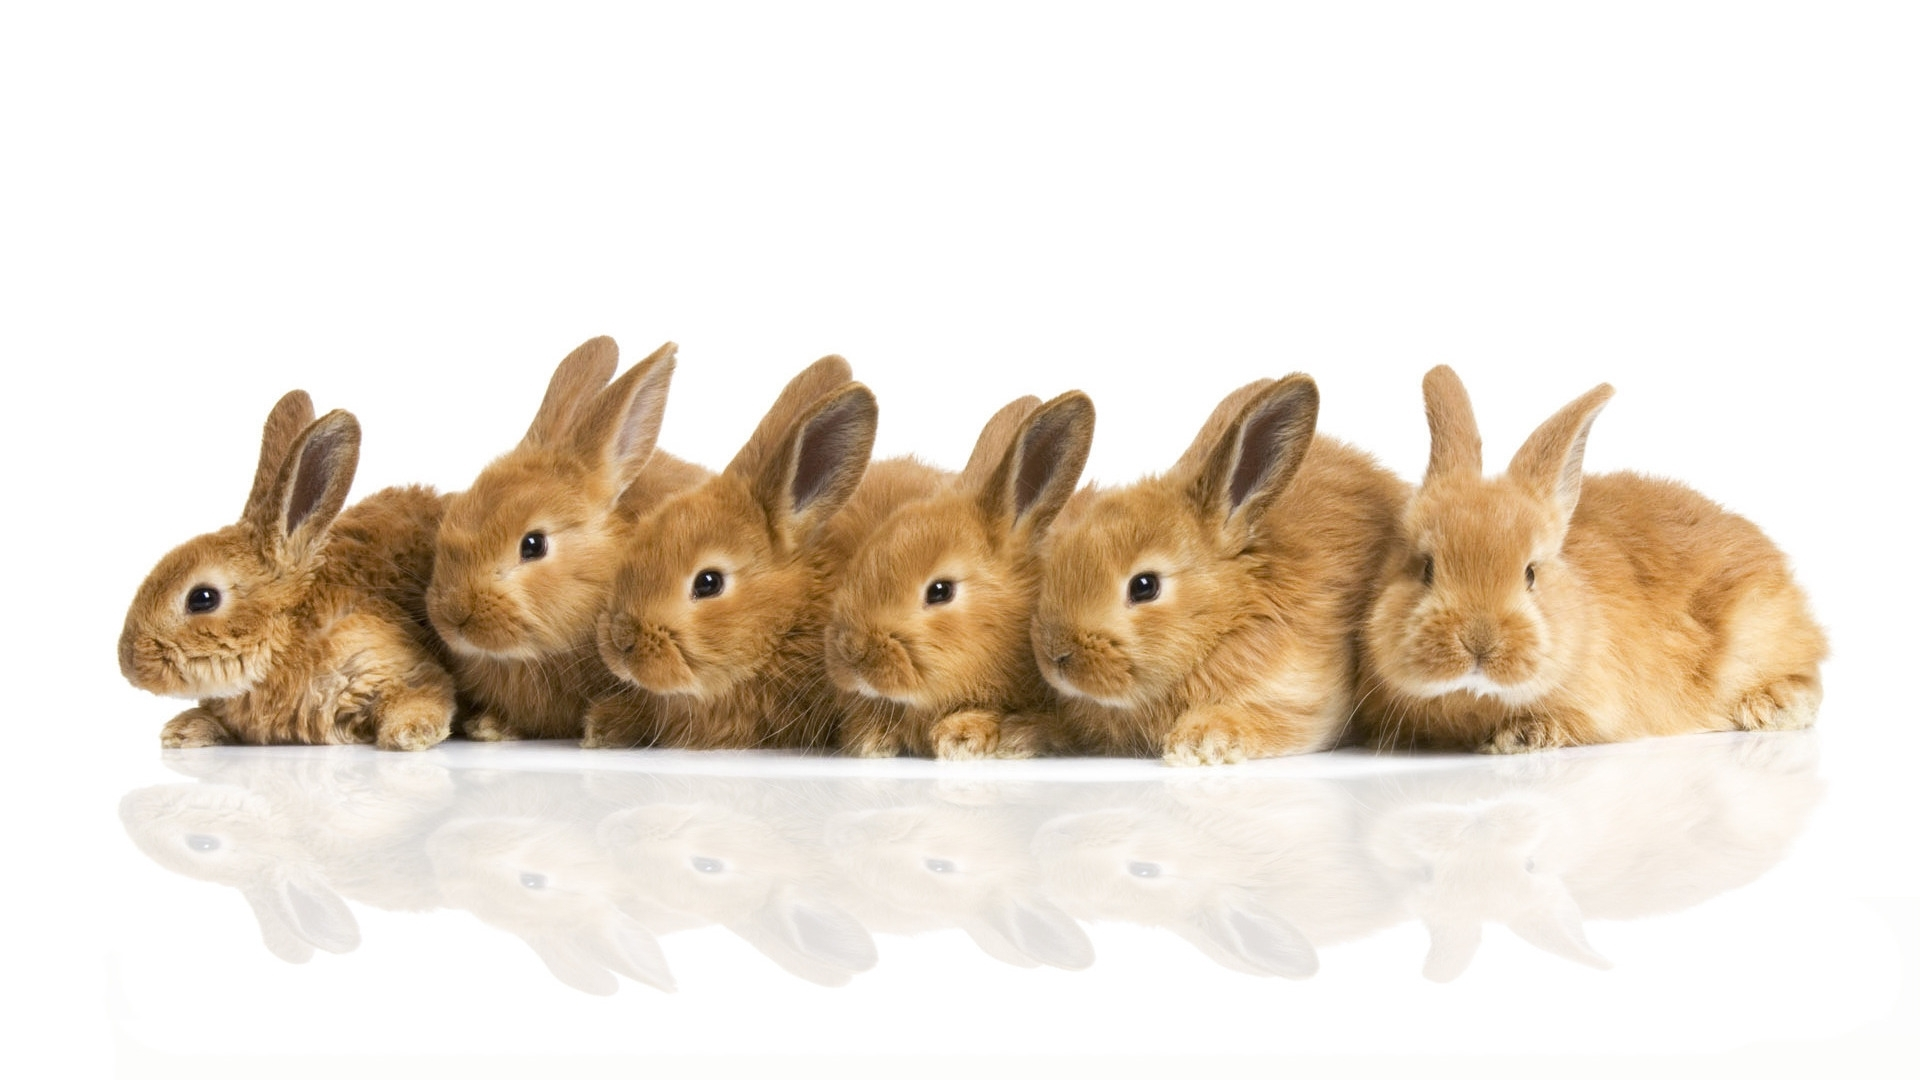 29358 download wallpaper Animals, Rabbits screensavers and pictures for free